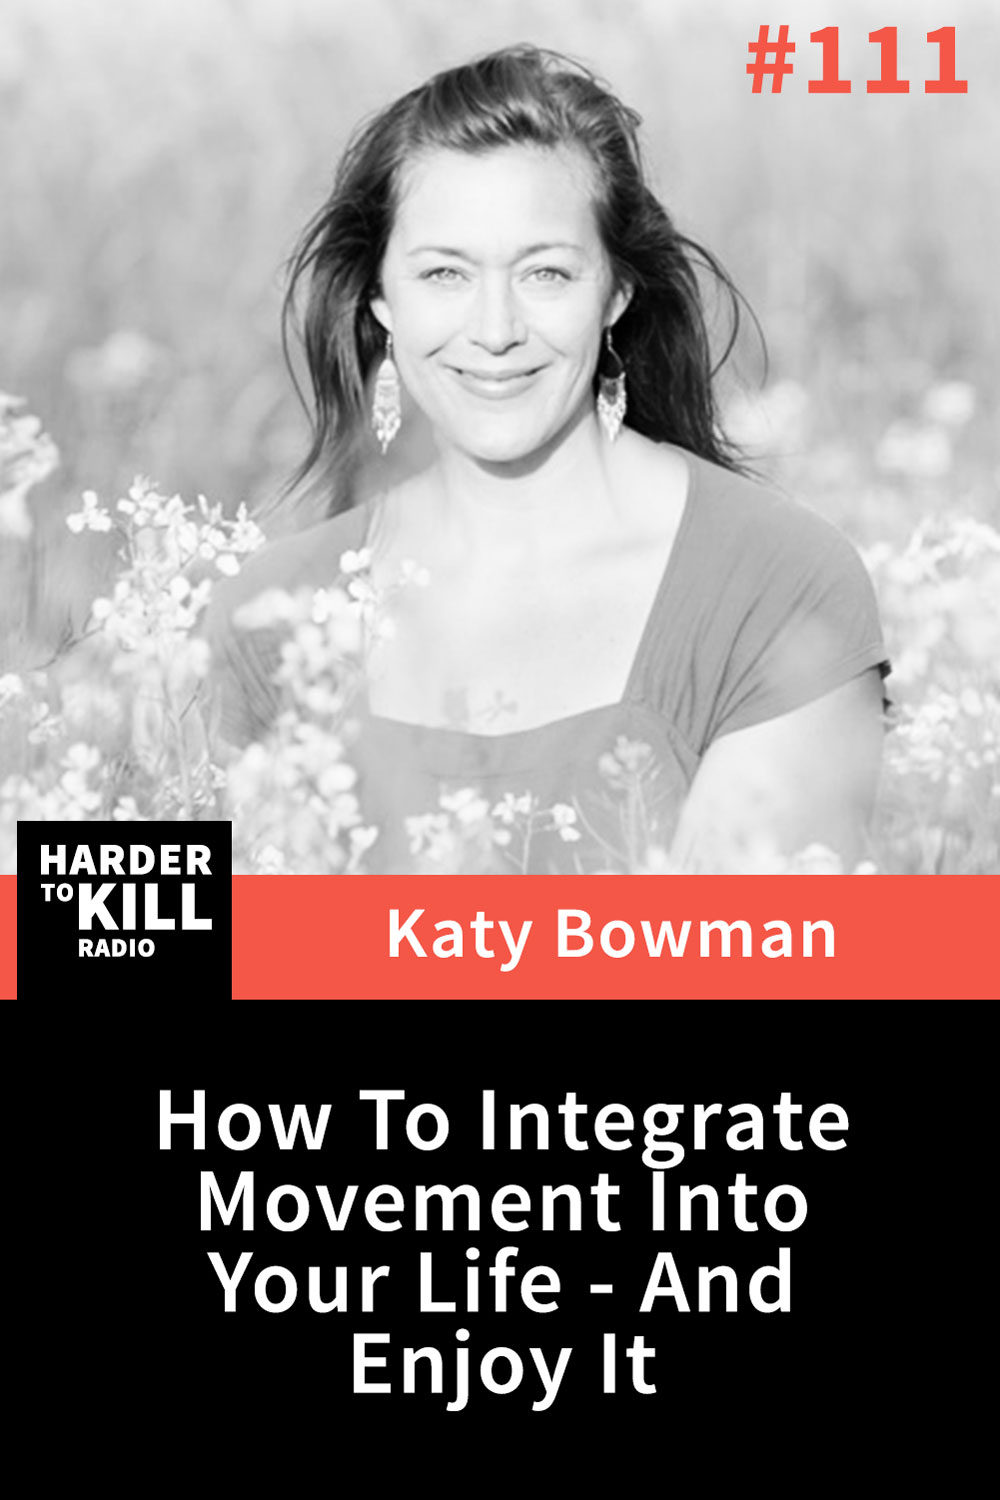 Harder To Kill Radio 111: How To Integrate Movement Into Your Life - And Enjoy It w/ Katy Bowman